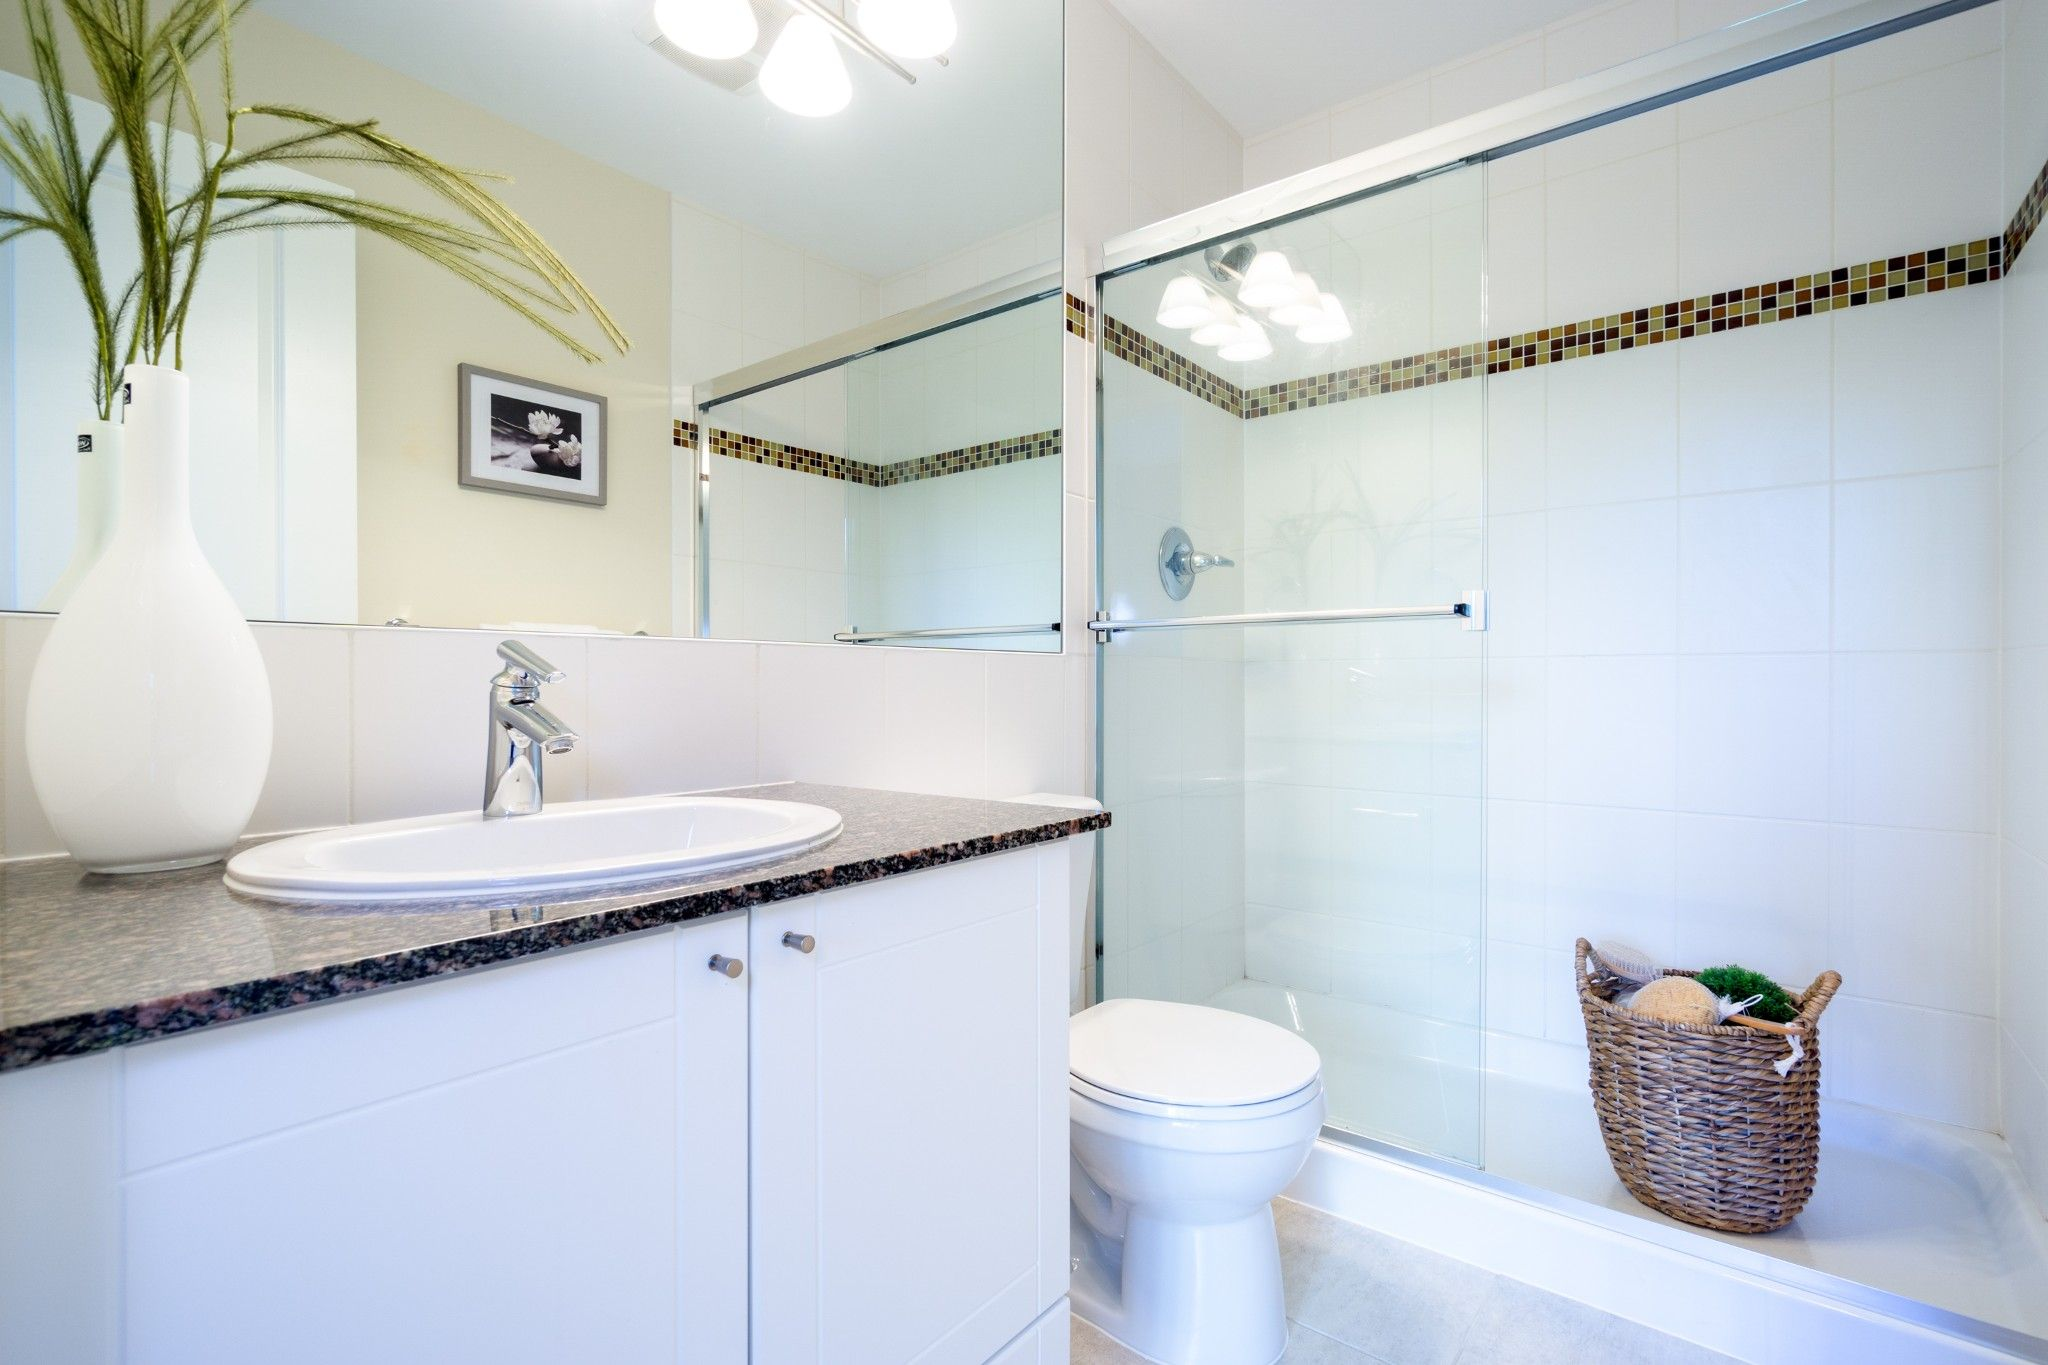 Photo 20: Photos: 208 3551 FOSTER Avenue in Vancouver: Collingwood VE Condo for sale (Vancouver East)  : MLS®# R2291555